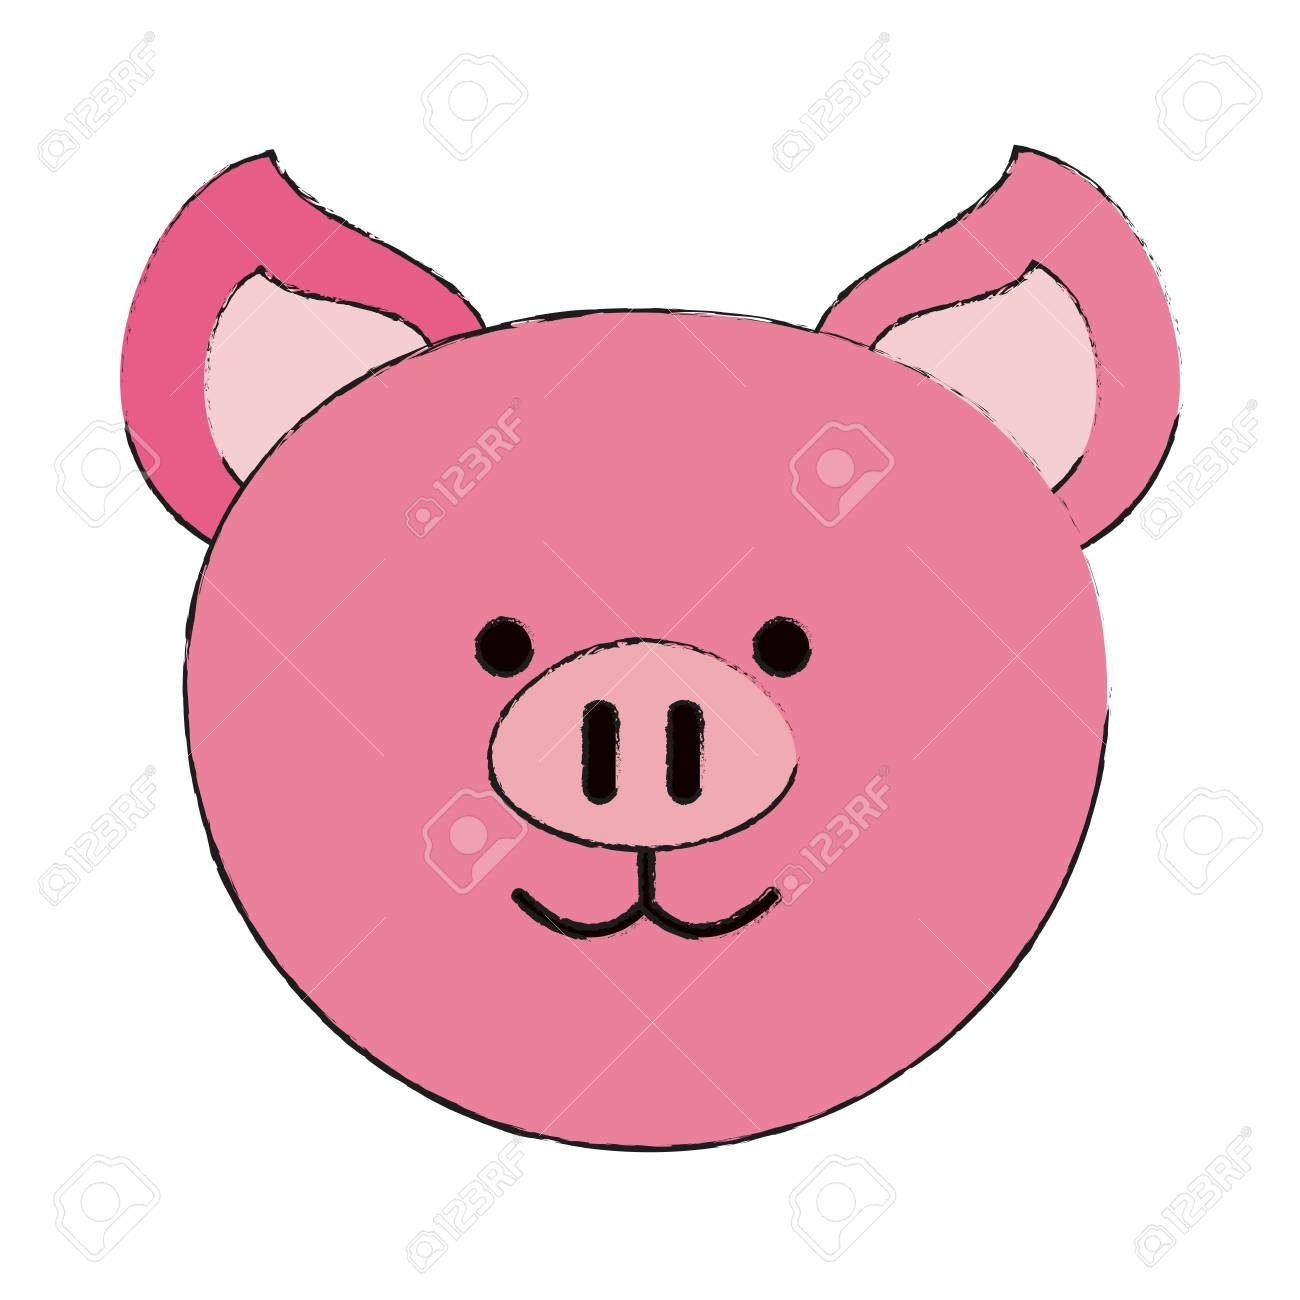 Pig Or Cute Stuffed Animal Icon Image Vector Illustration Design